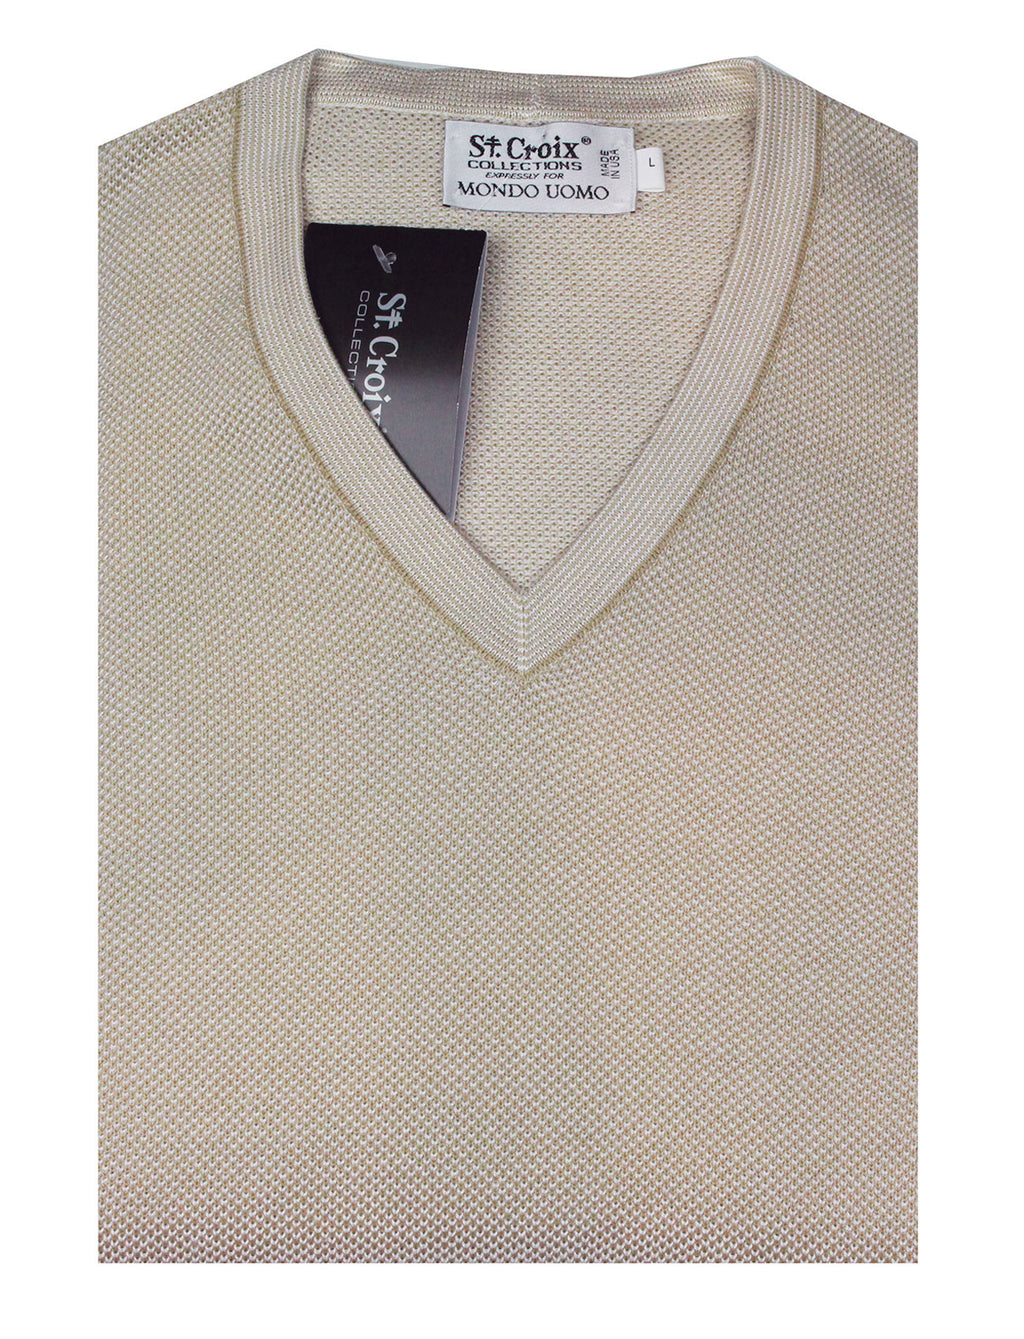 St Croix Sweater V Neck Almond